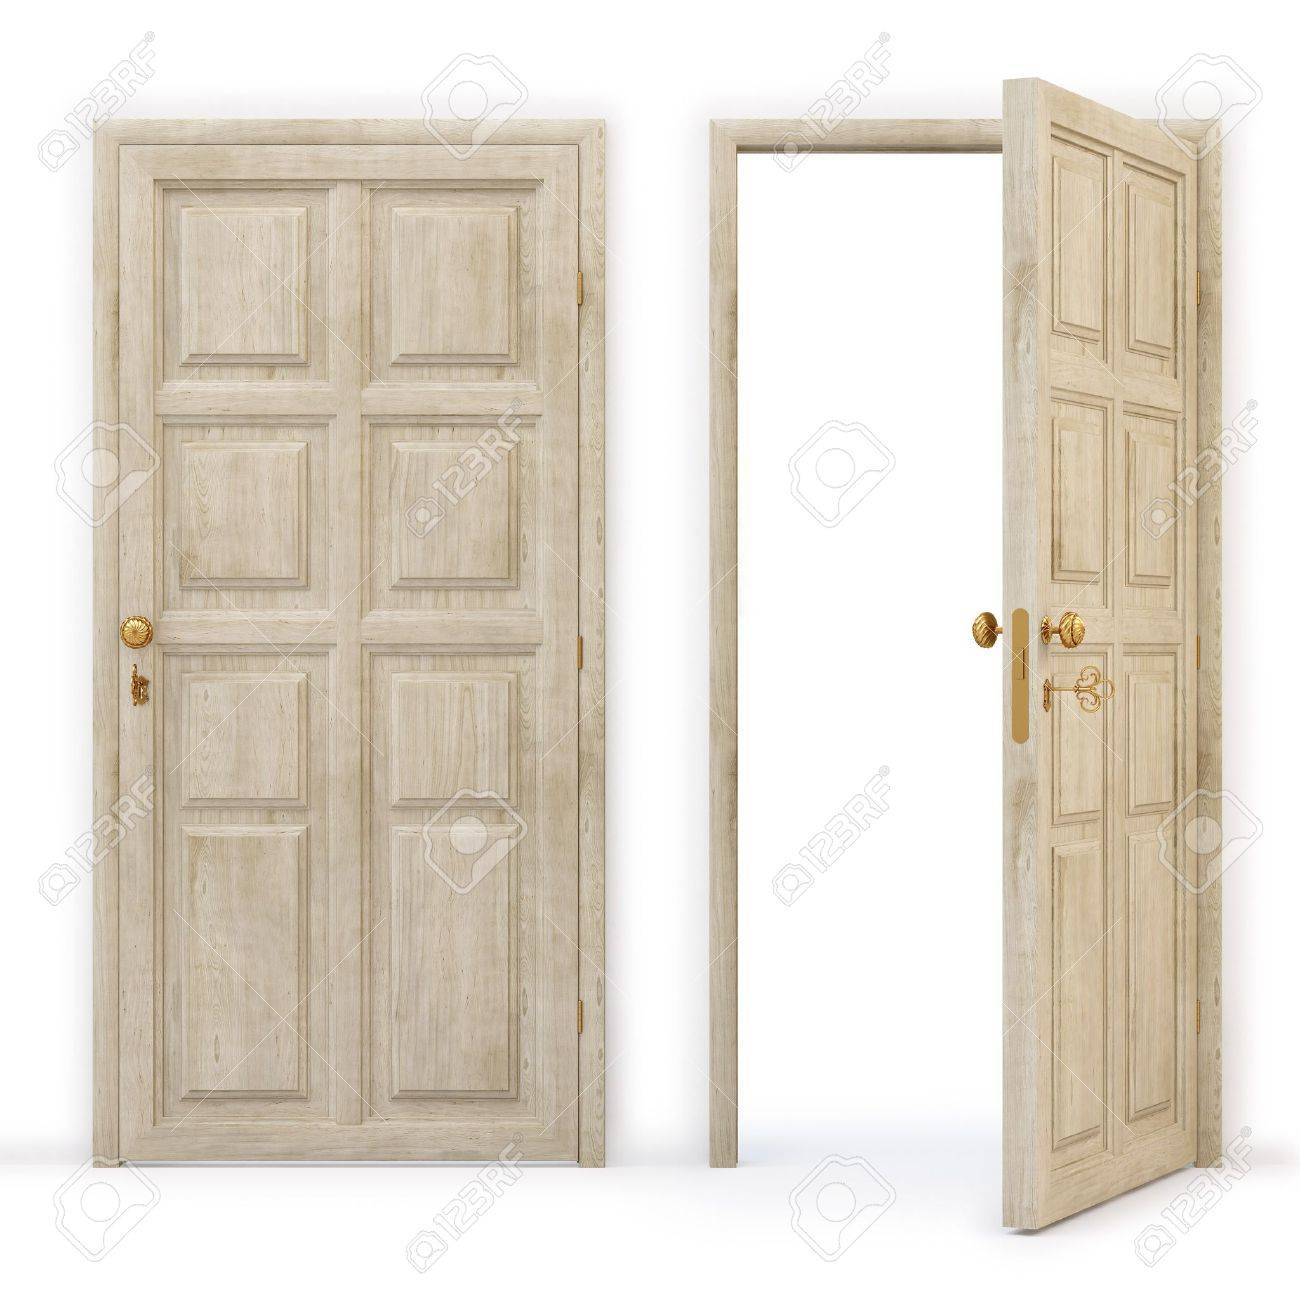 Open door closed door - Open And Closed Wooden Doors Stock Photo 8657103